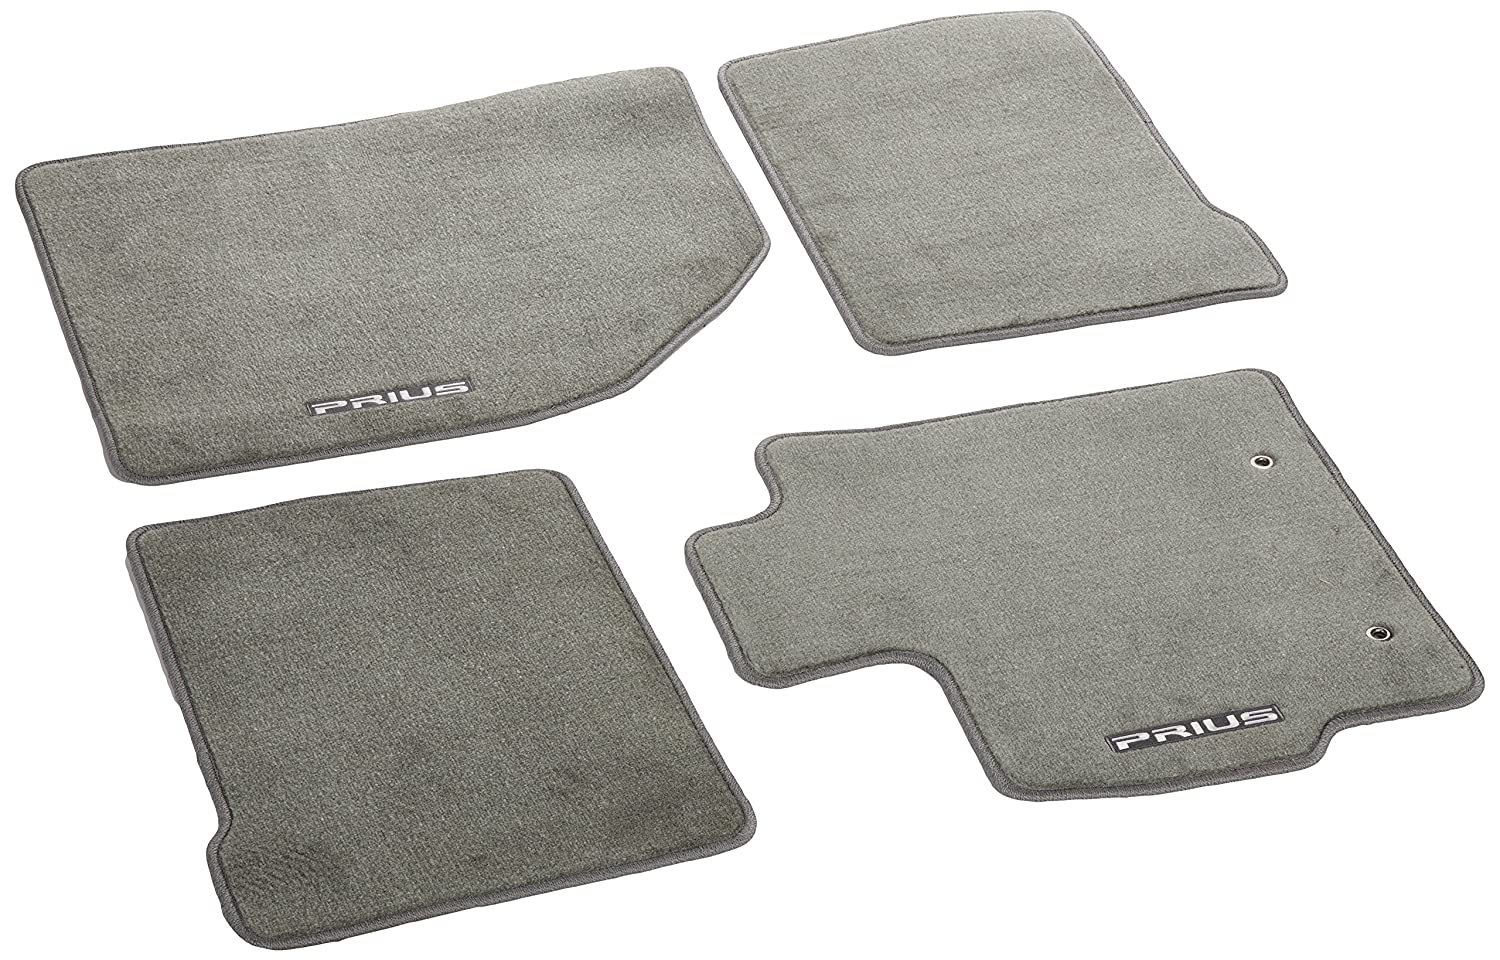 Genuine Toyota Accessories PT926-47101-11 Dark Gray Carpet Floor Mat for 2010-2011 Regular Prius Models Only